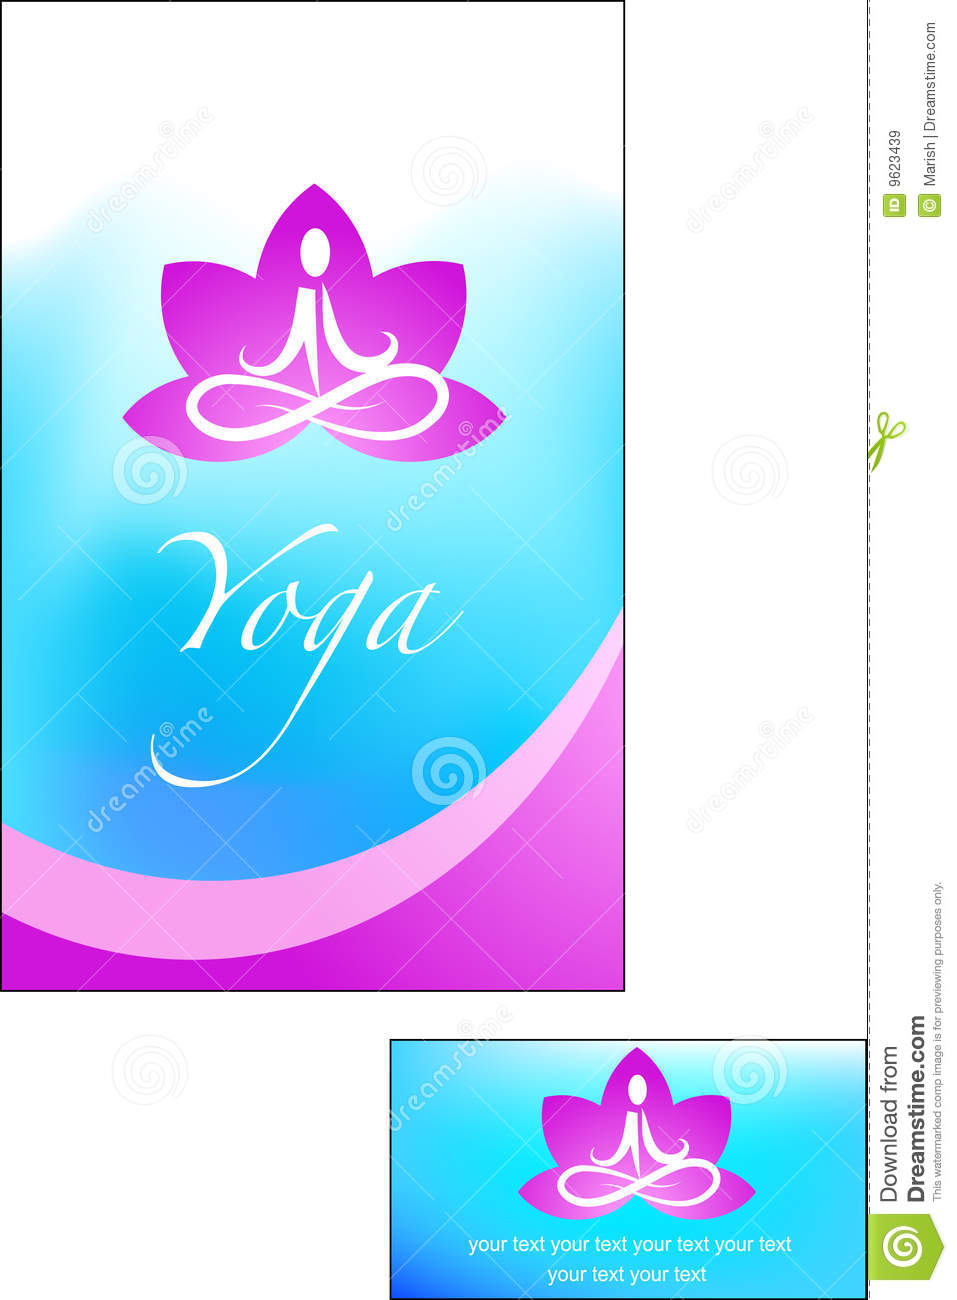 Template of yoga brochure royalty free stock images for Yoga brochure templates